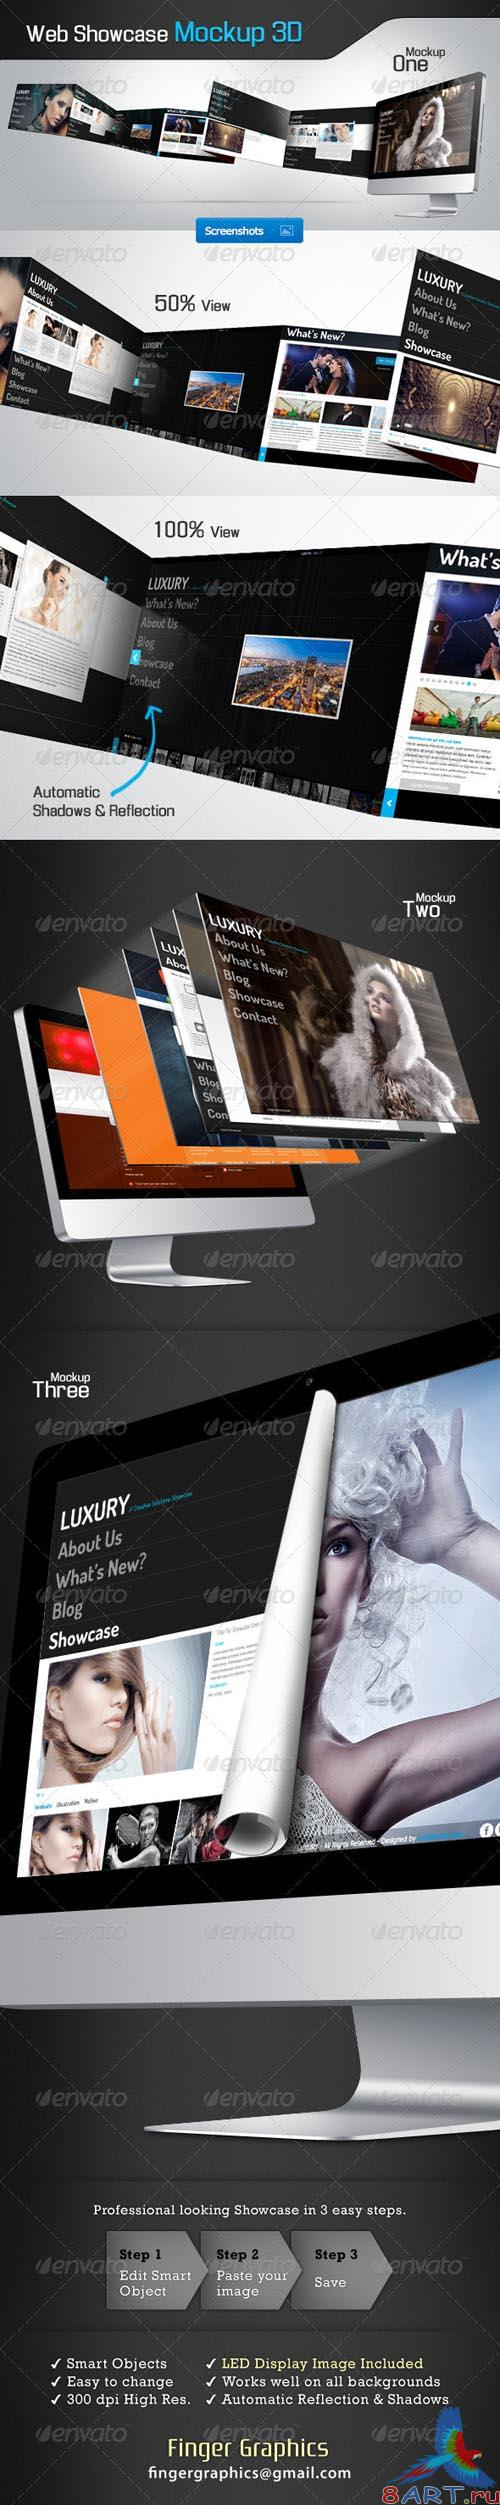 GraphicRiver Web Showcase Mockup - REUPLOAD